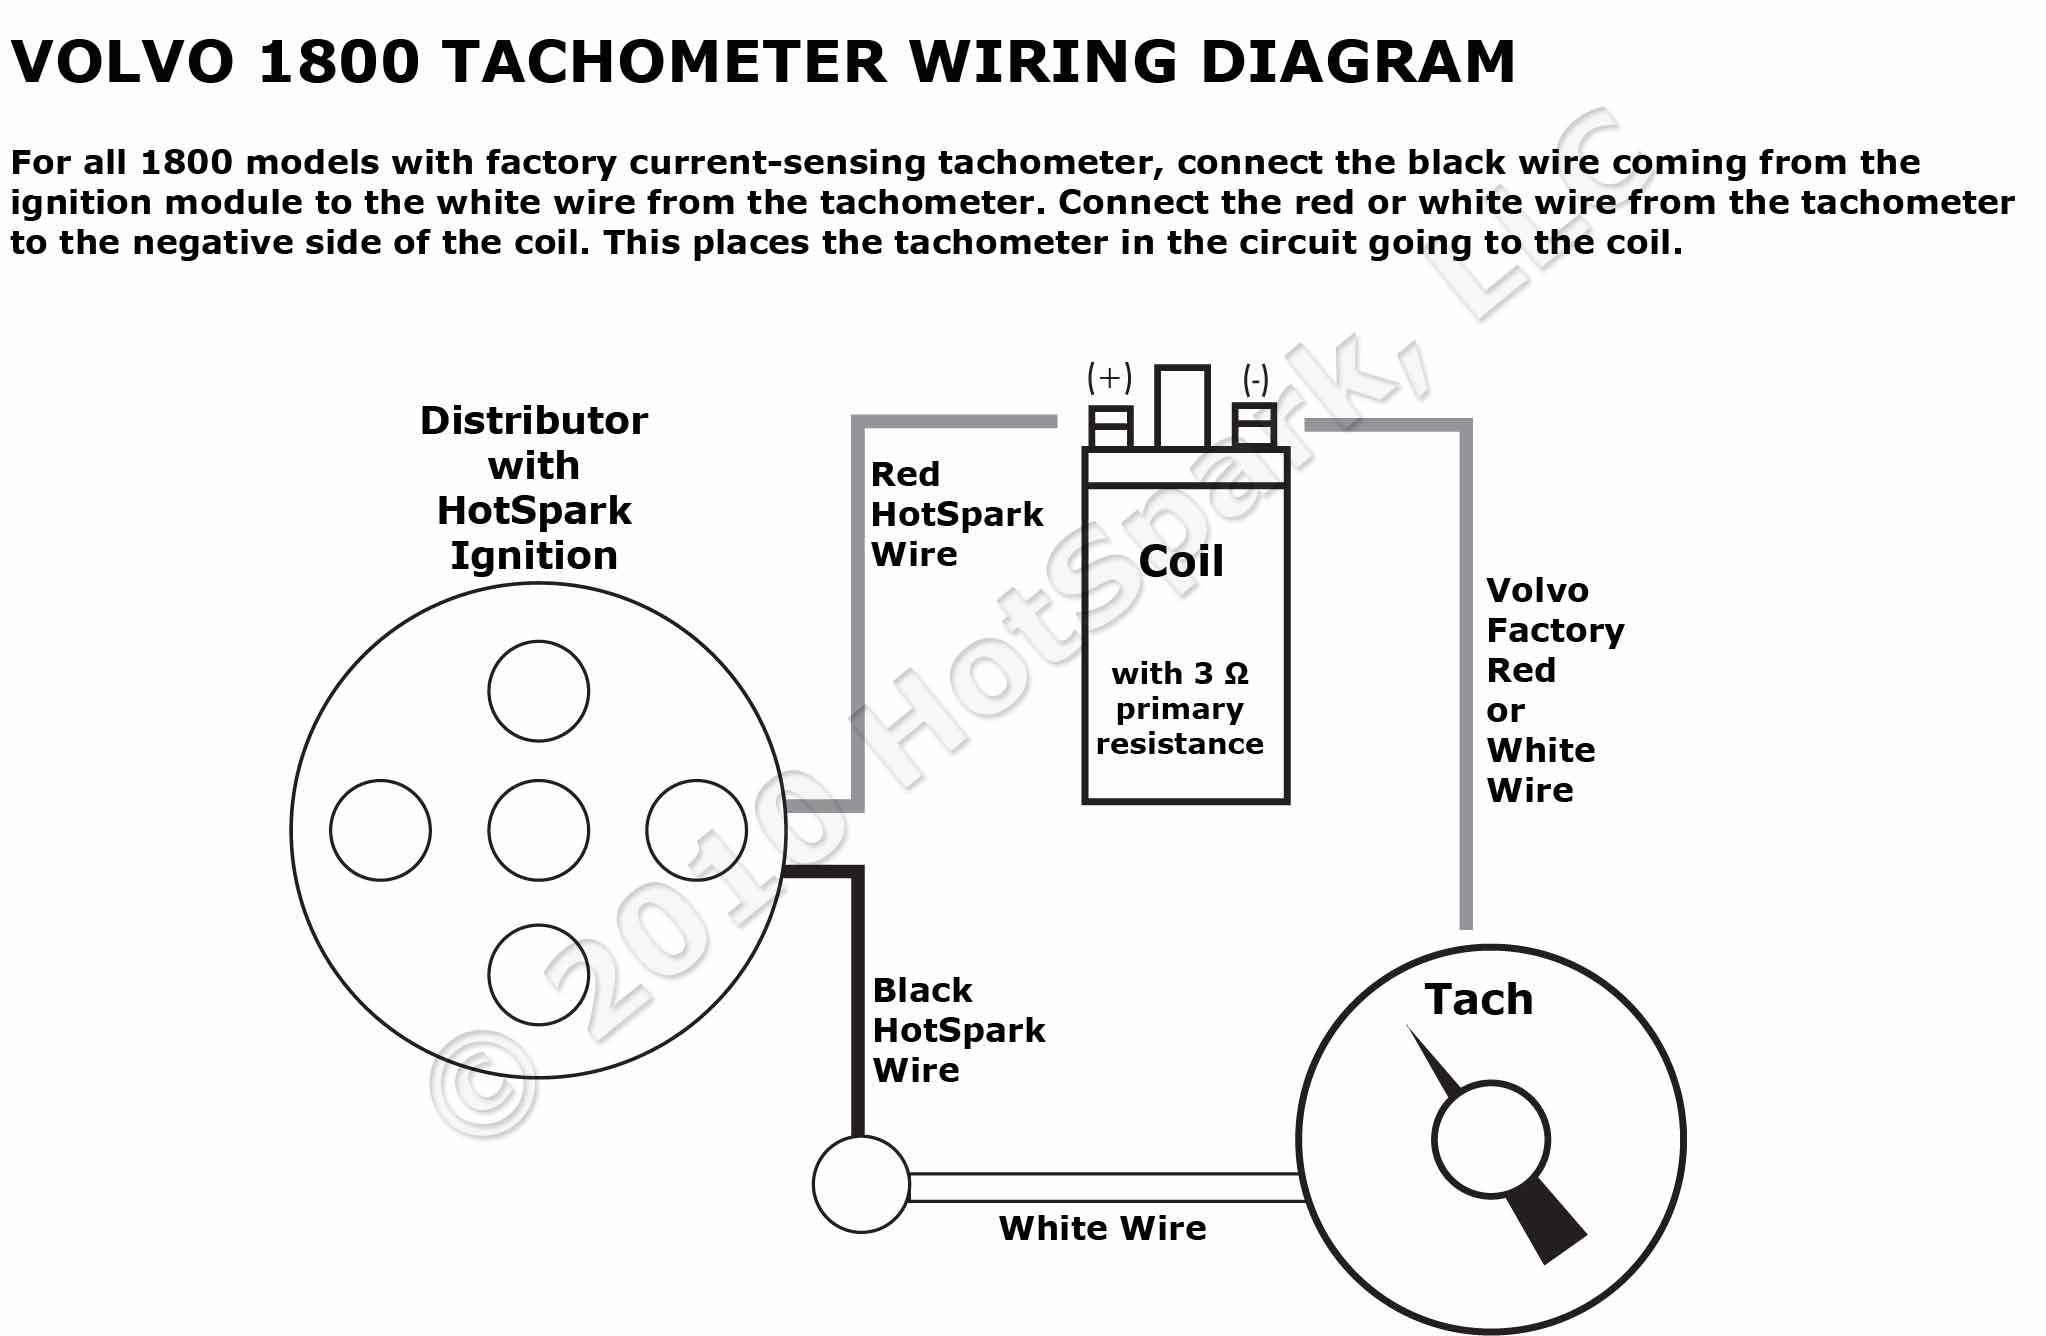 Electronic Ignition Wiring Diagram: Volvo 1800 Tachometer Wiring Diagram with HotSpark Ignition ,Design